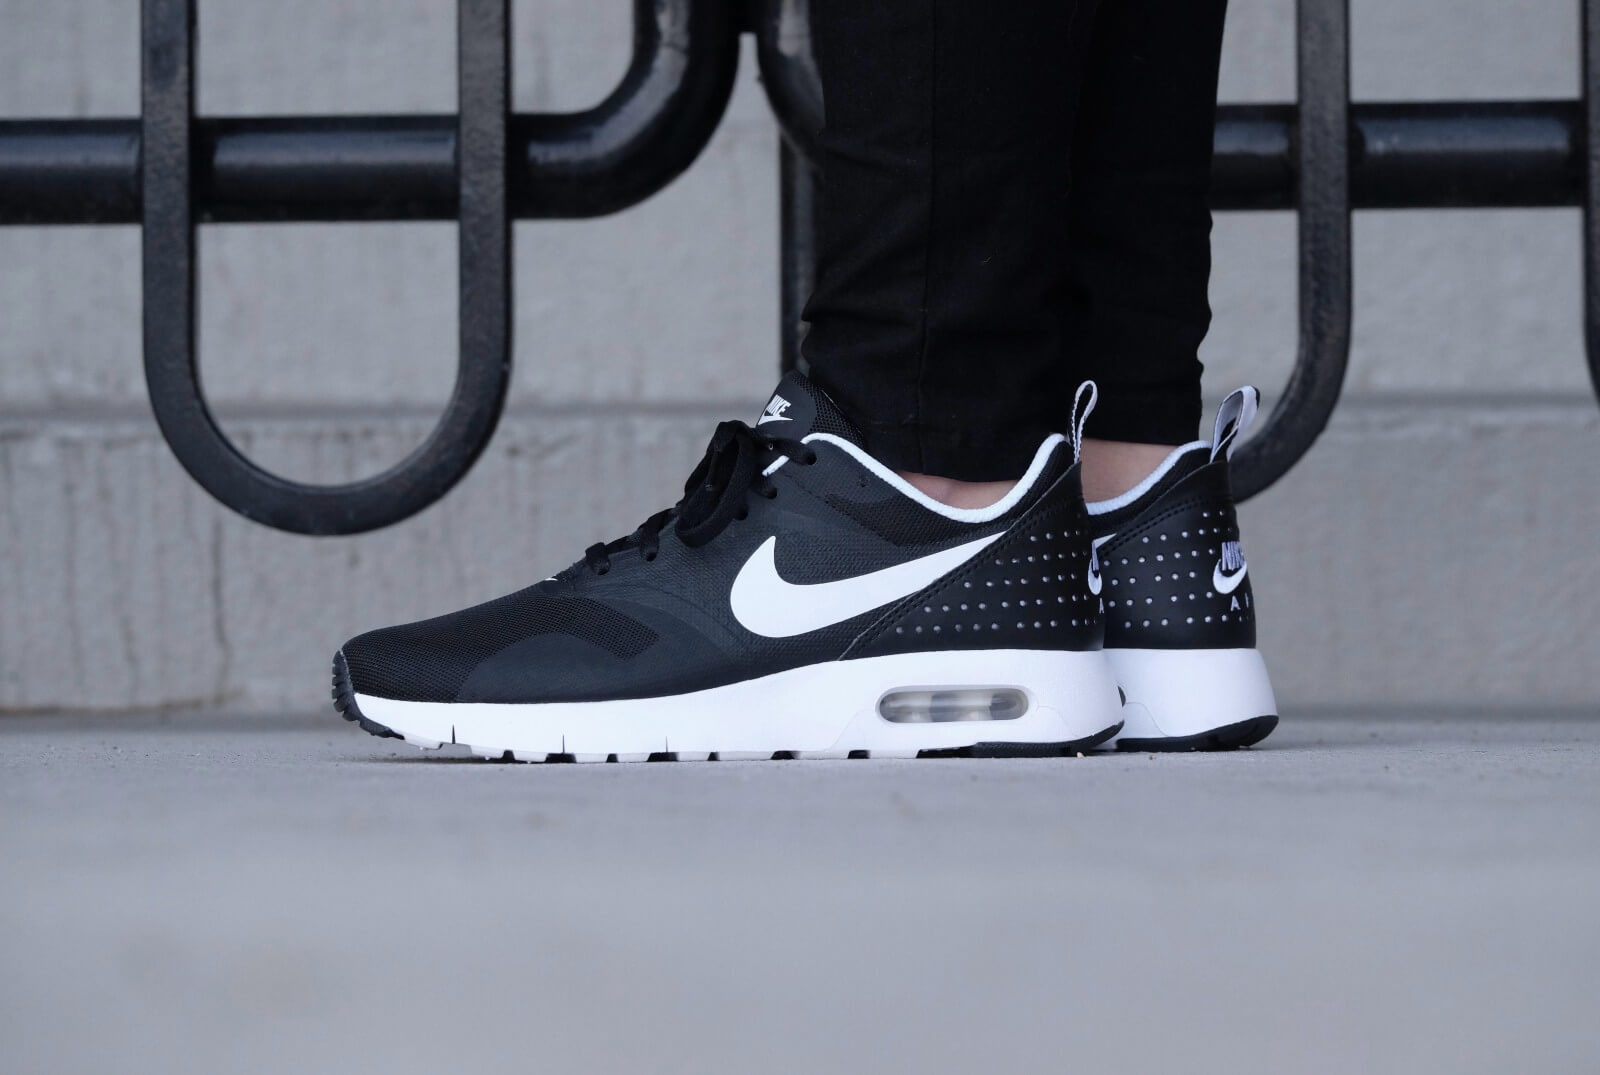 Nike WMNS Air Max Tavas GS BlackWhite 814443 001